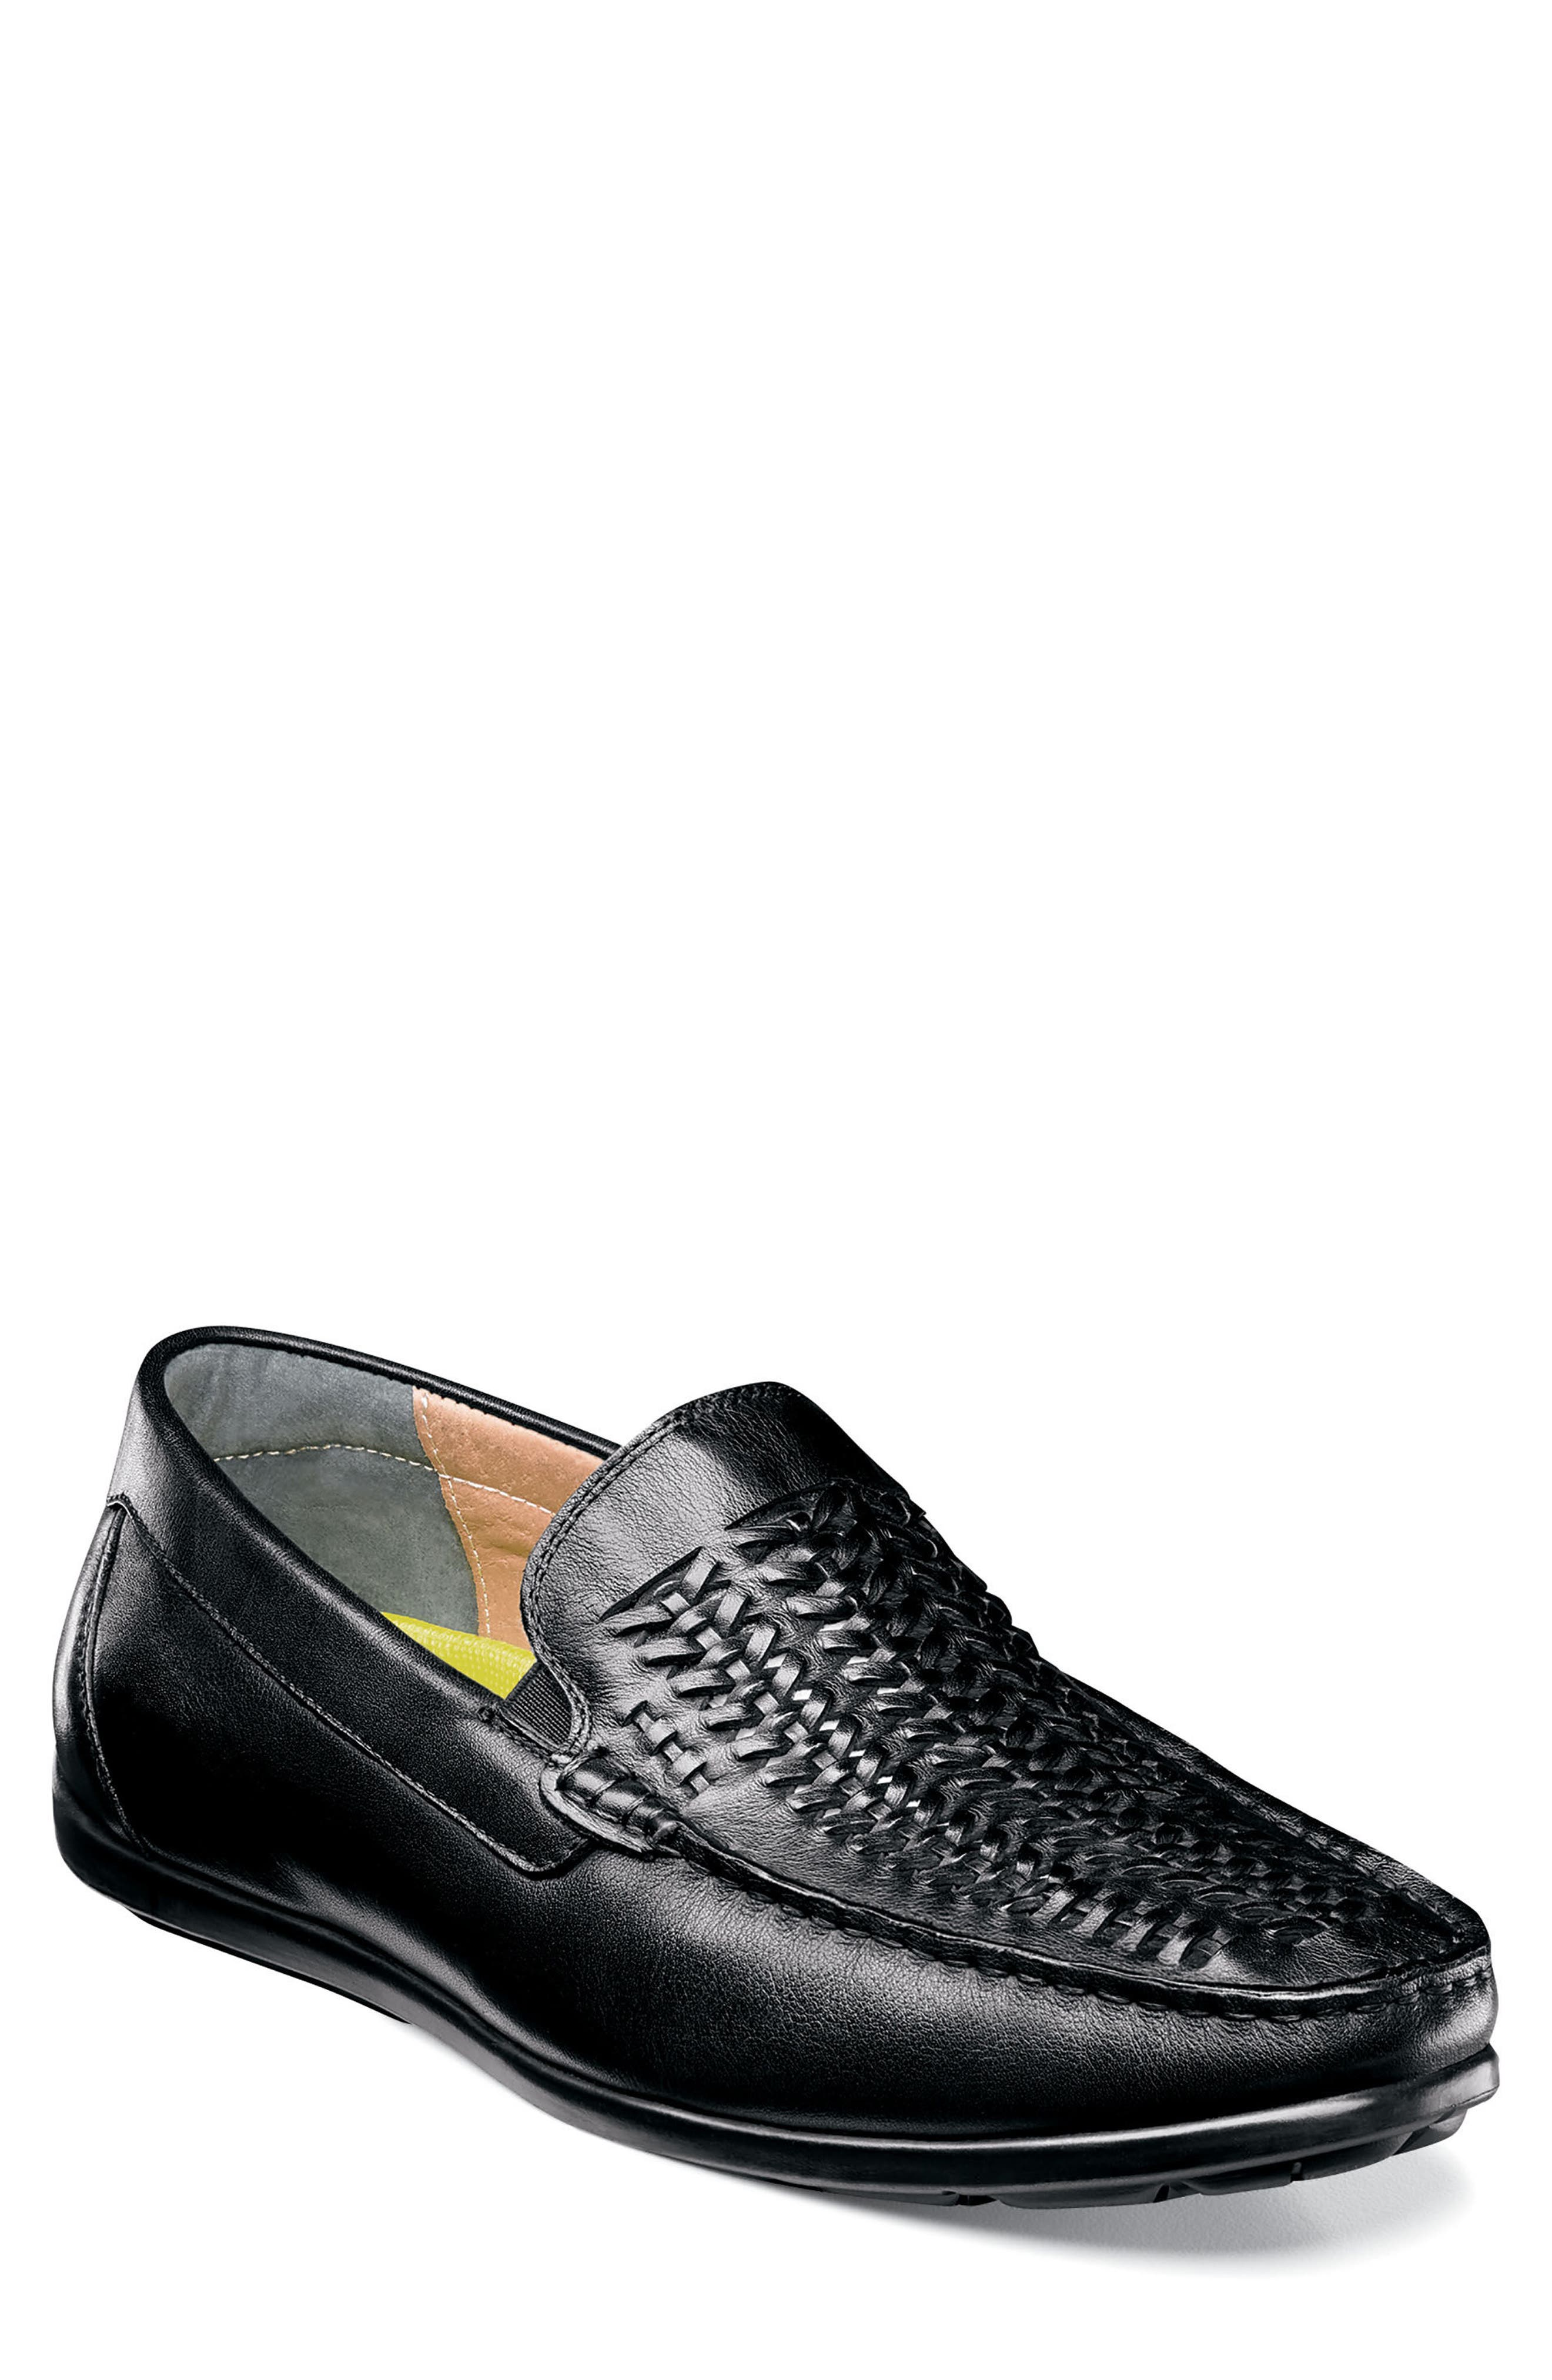 Comfortech Draft Loafer,                             Main thumbnail 1, color,                             Black/Black Leather